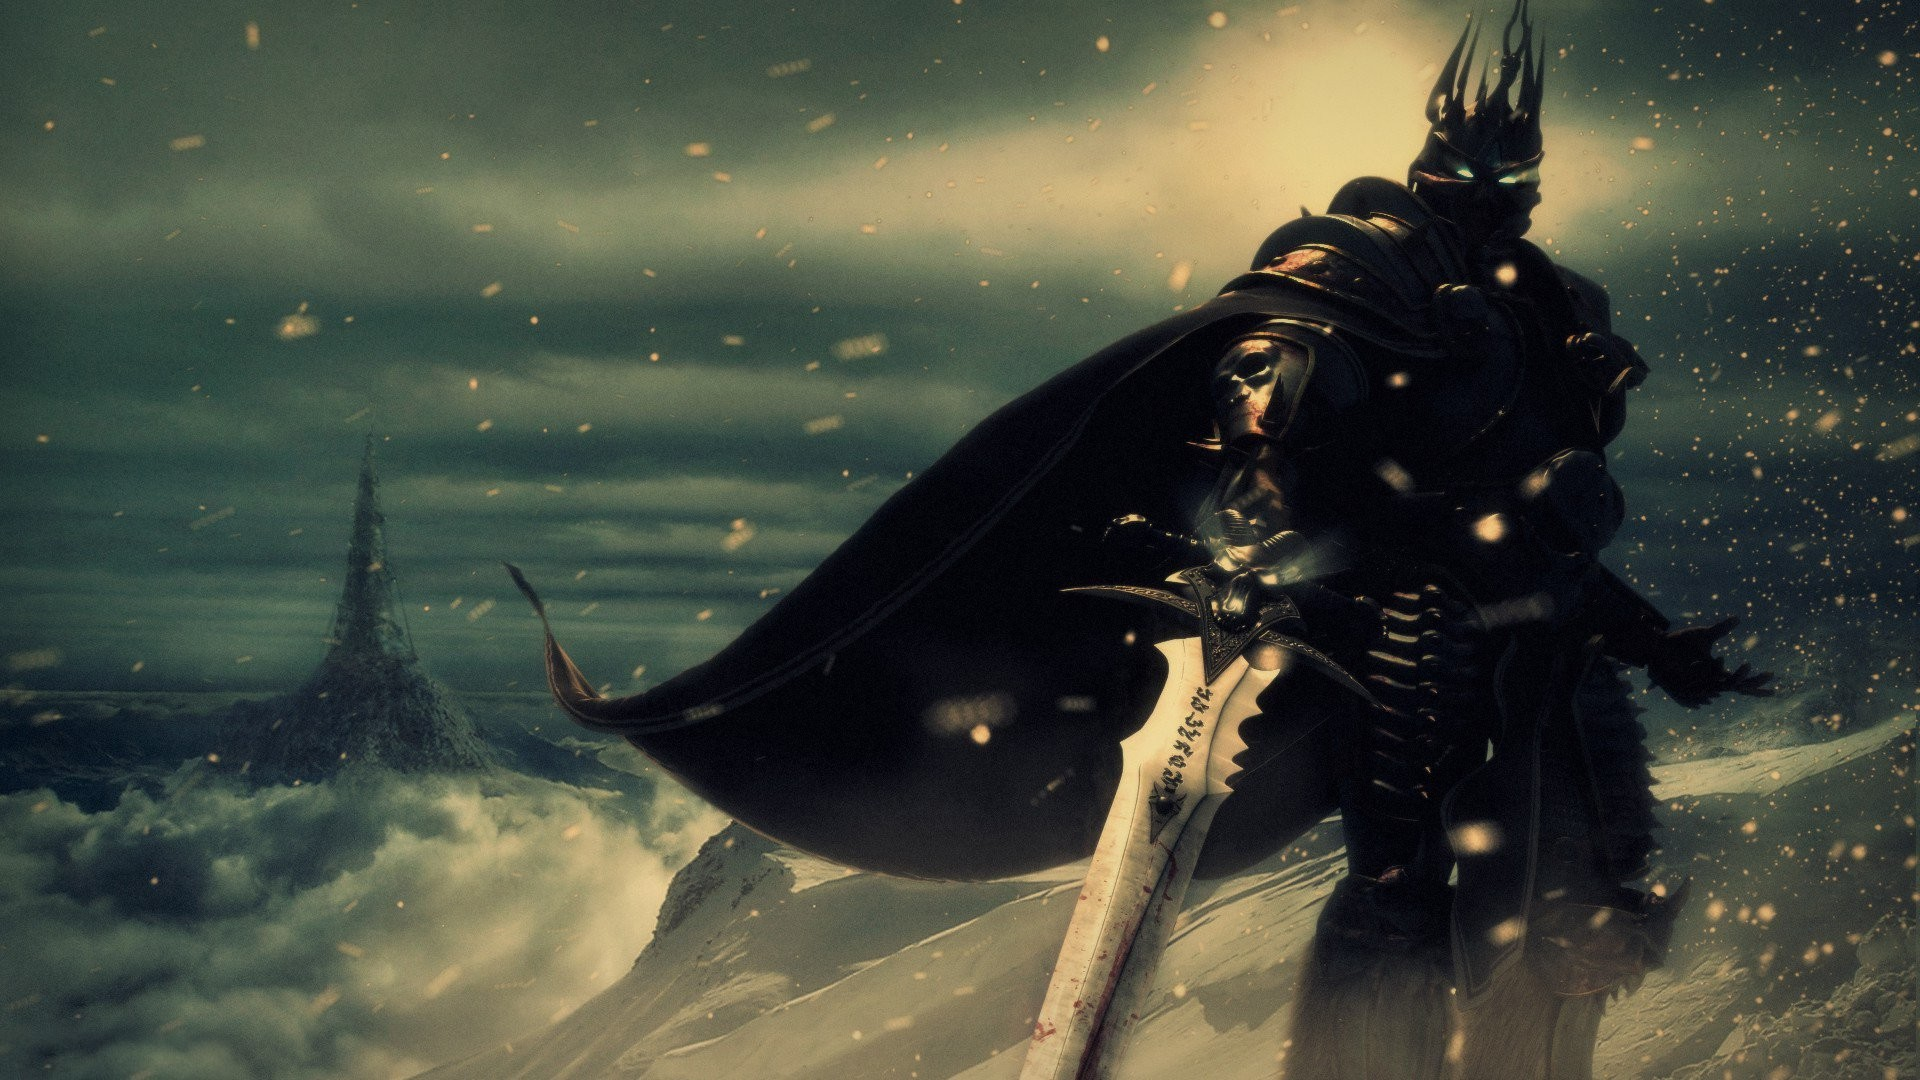 4k Animated Wallpaper 57 Images